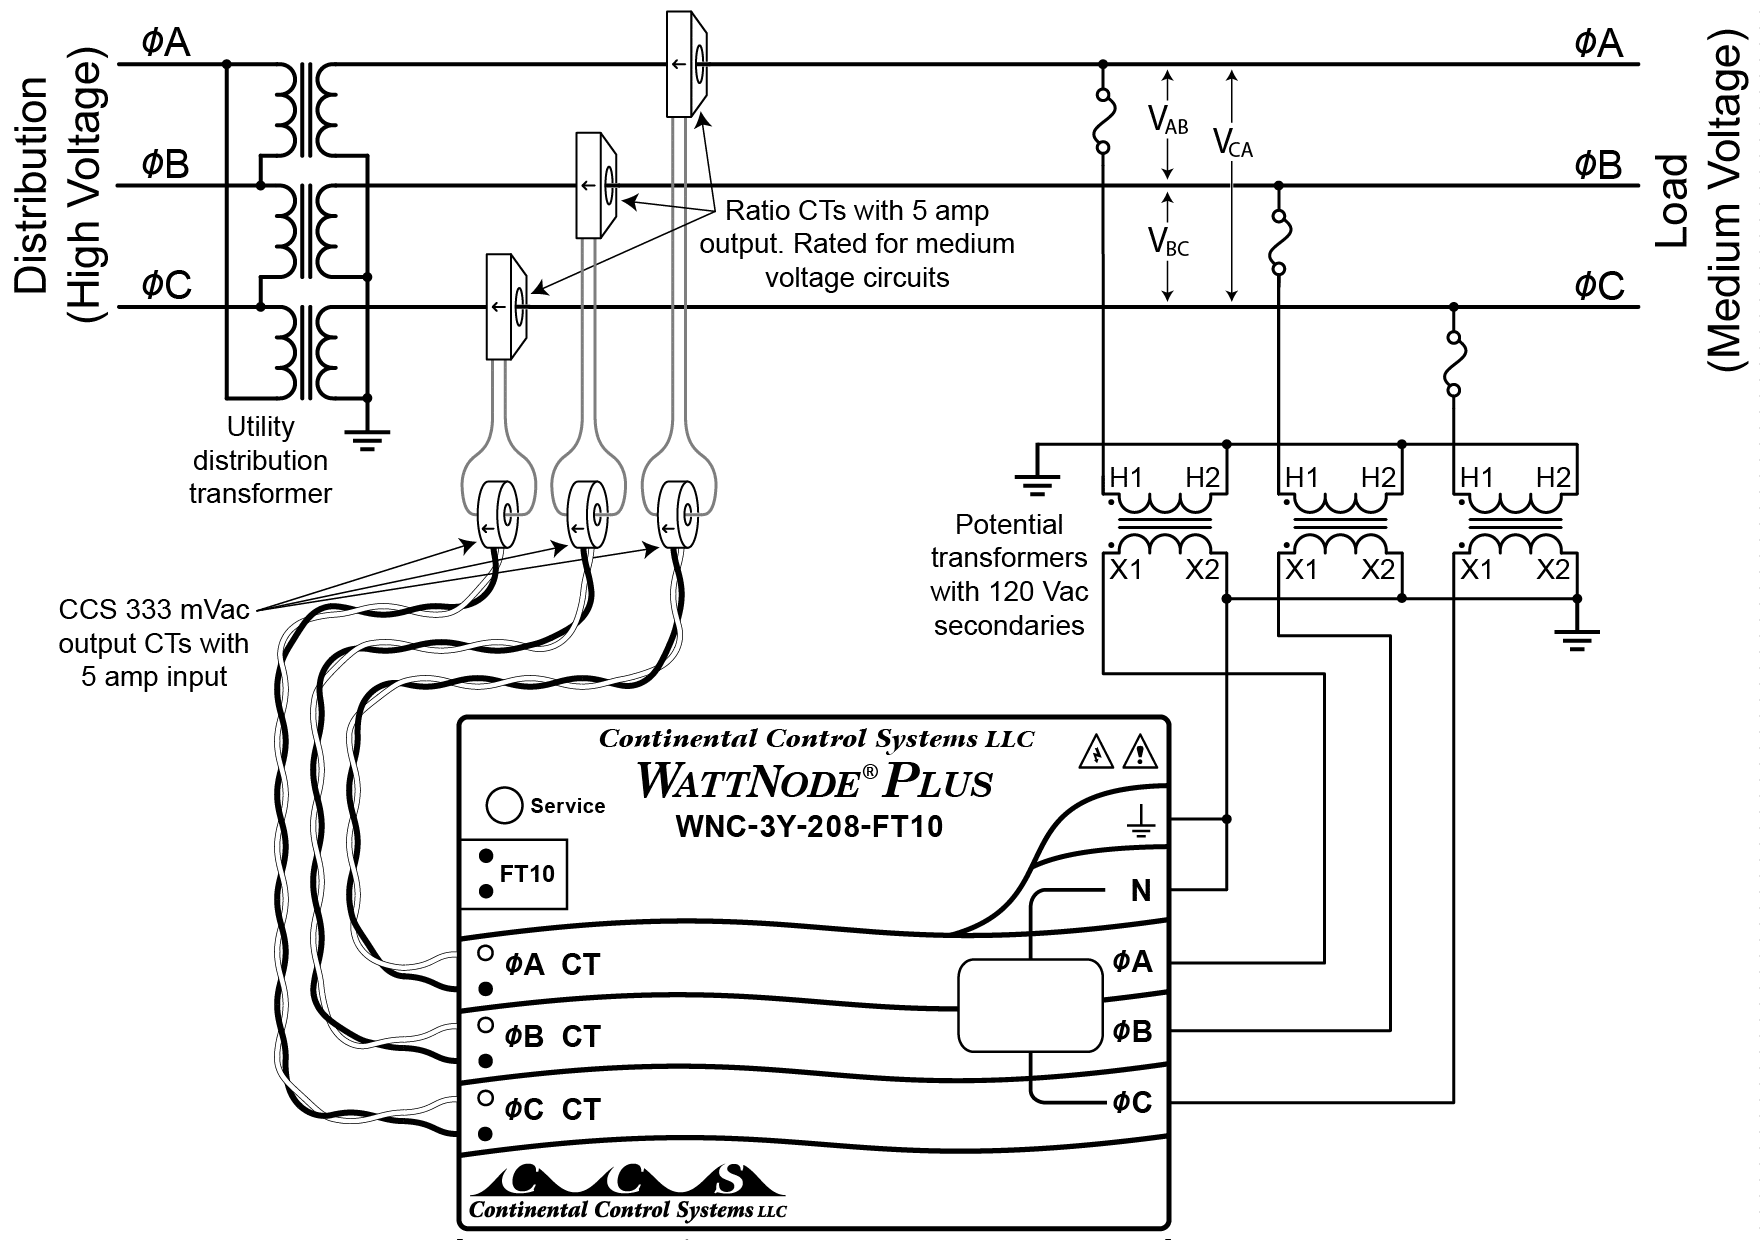 ct meter panel wiring diagram rj45 wall socket using potential transformers  continental control systems